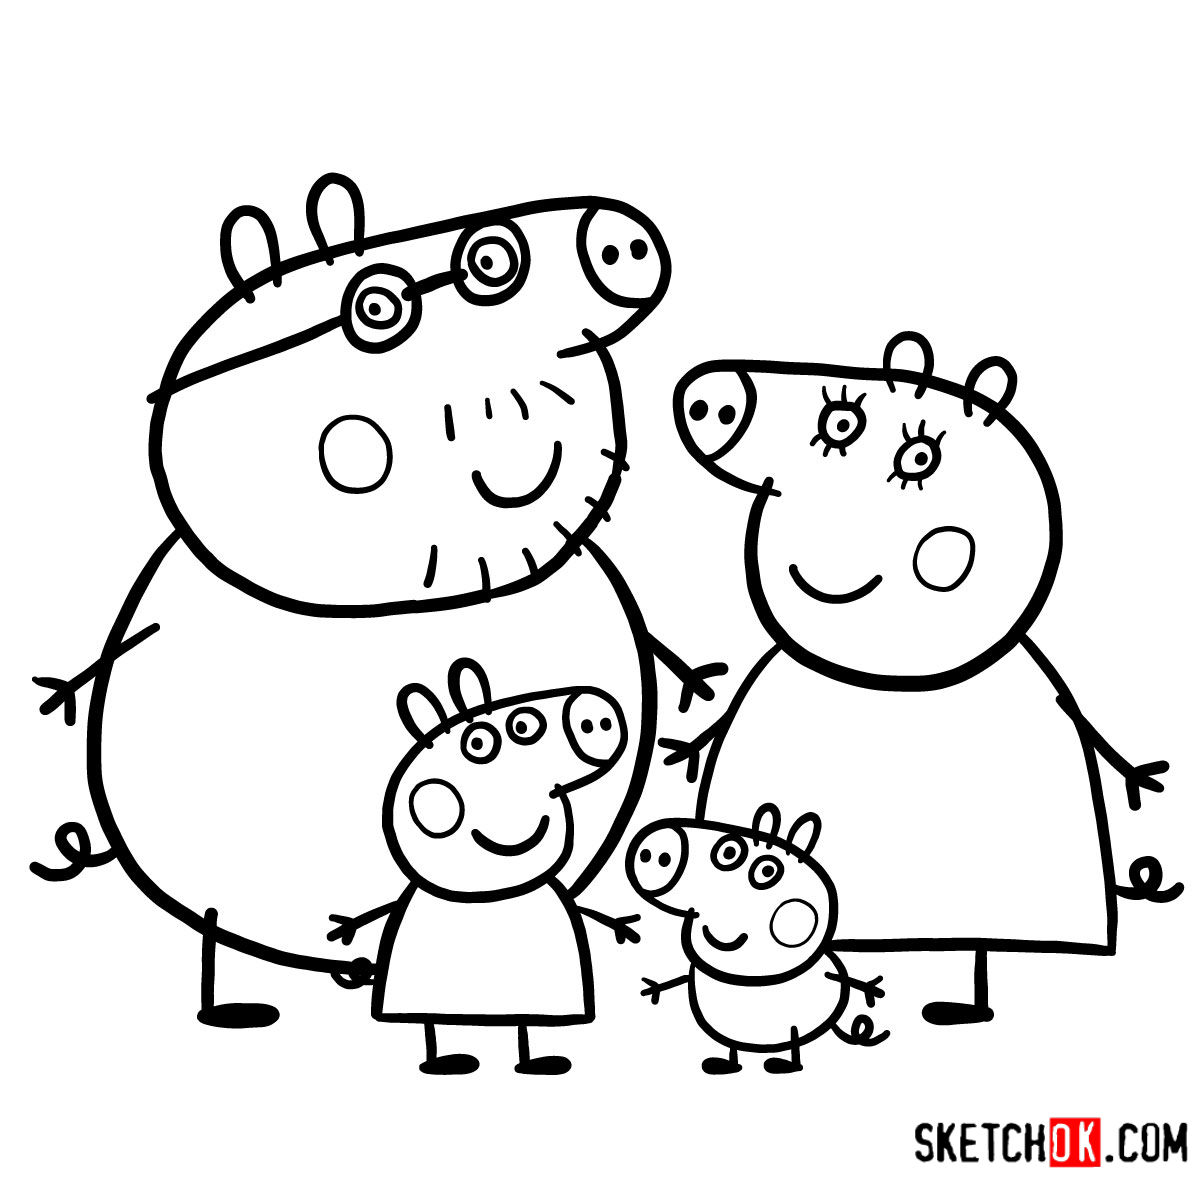 How to draw Peppa Pig's family